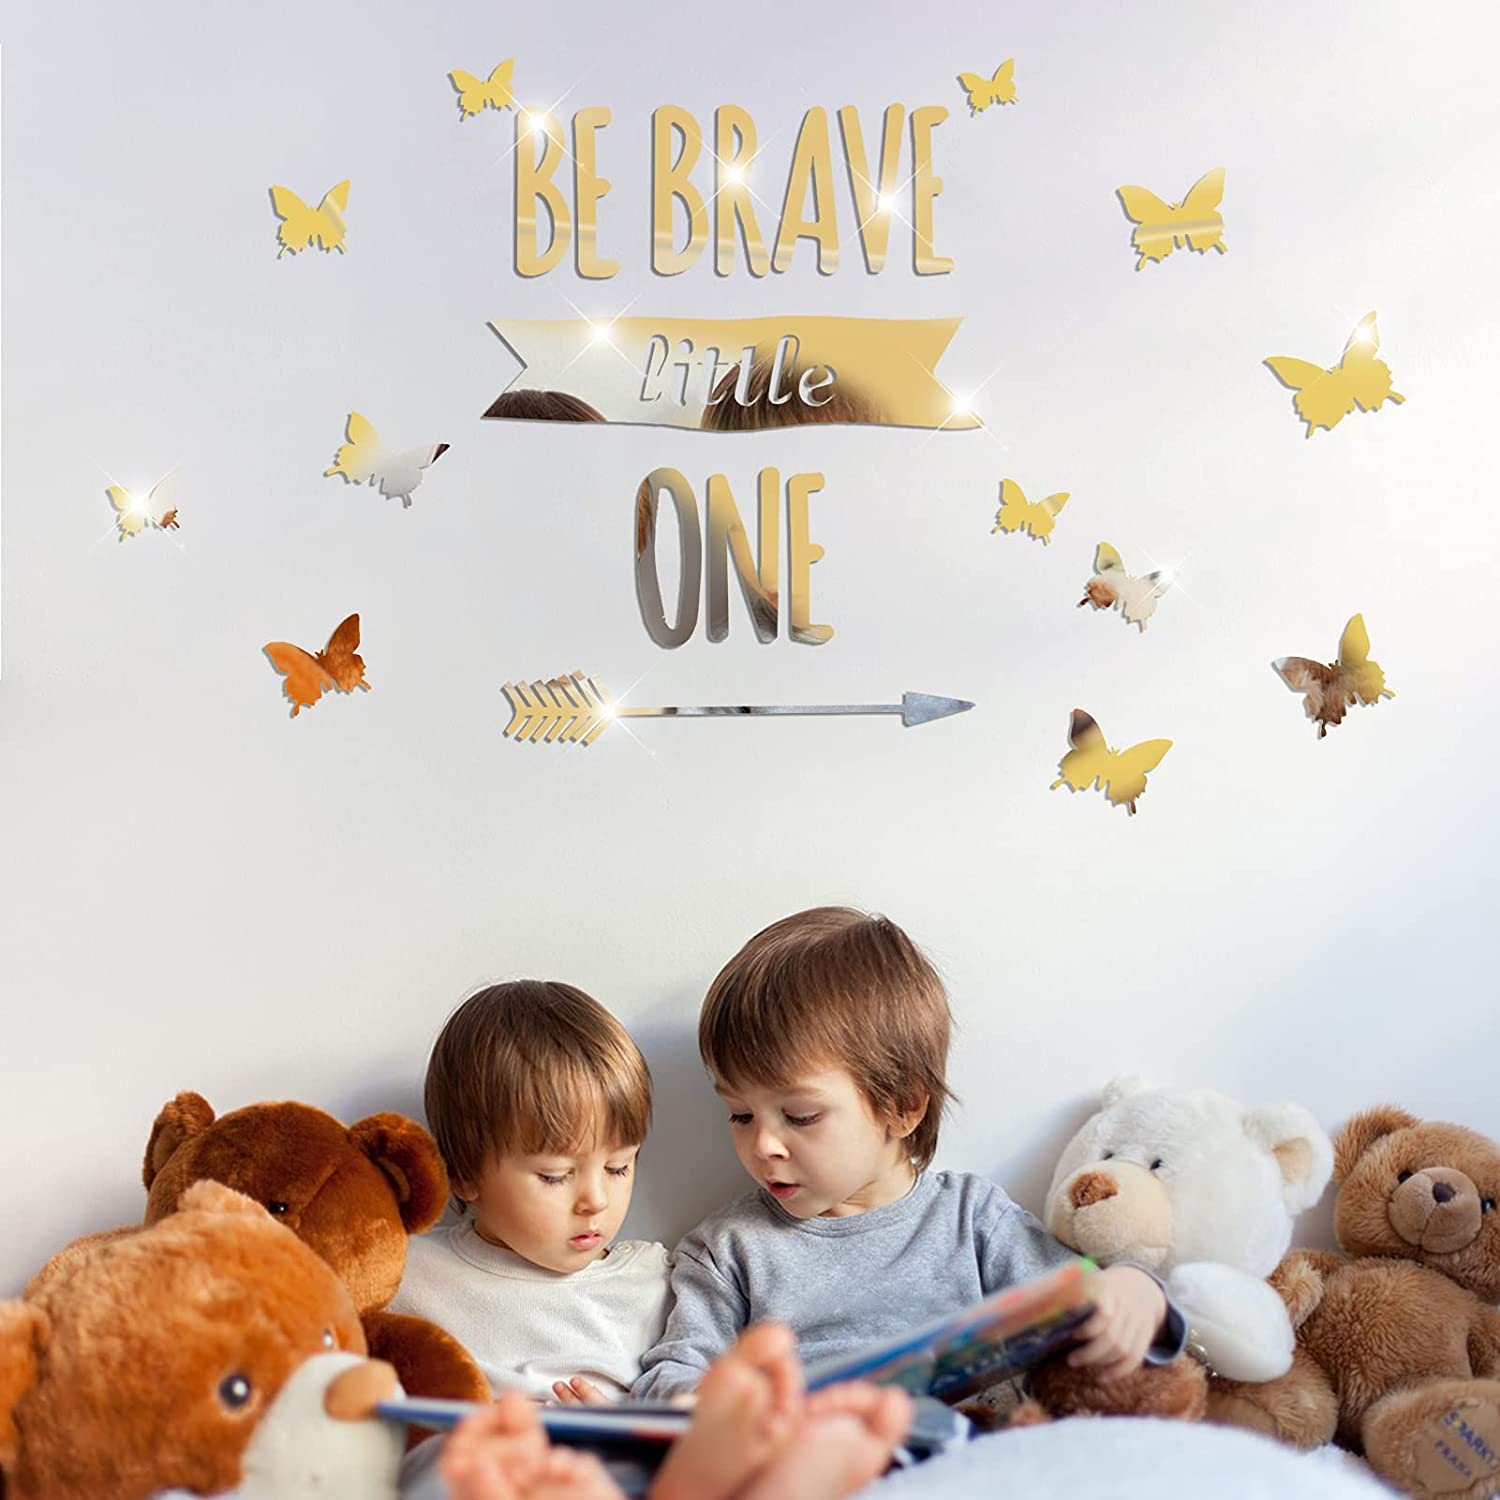 3D Acrylic Mirror Wall Stickers Butterfly Decor, Removable Be Brave Little One & Butterflies DIY Decals, Modern Art Mural for Kids Bedroom Nursery Decoration(Golden)